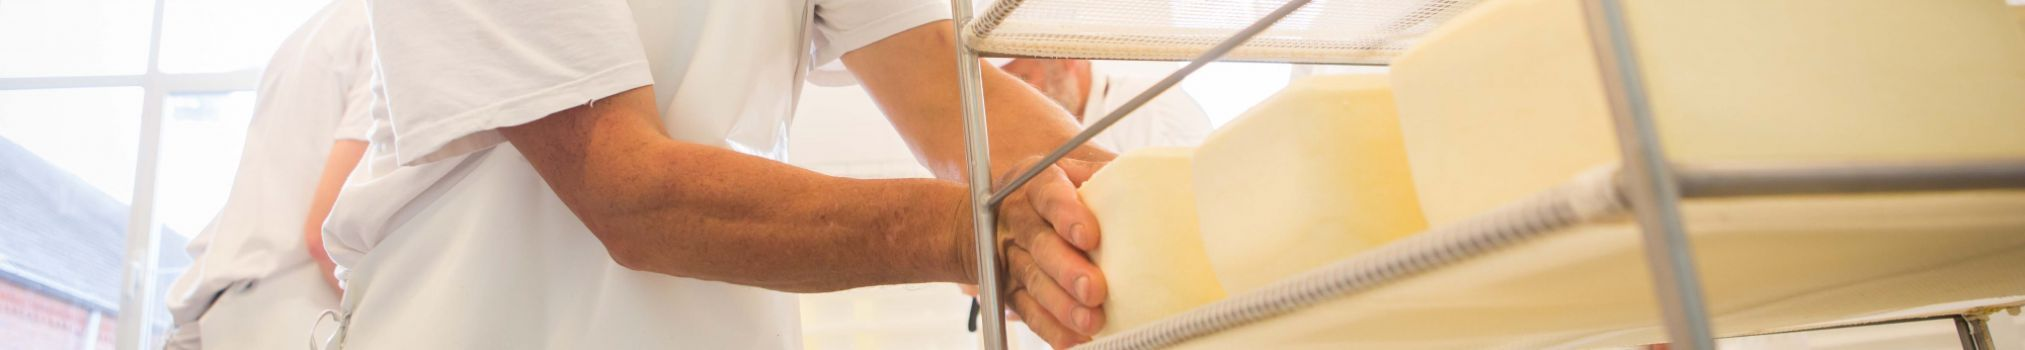 A fresh Trappist cheese is readied for steeping in brine.